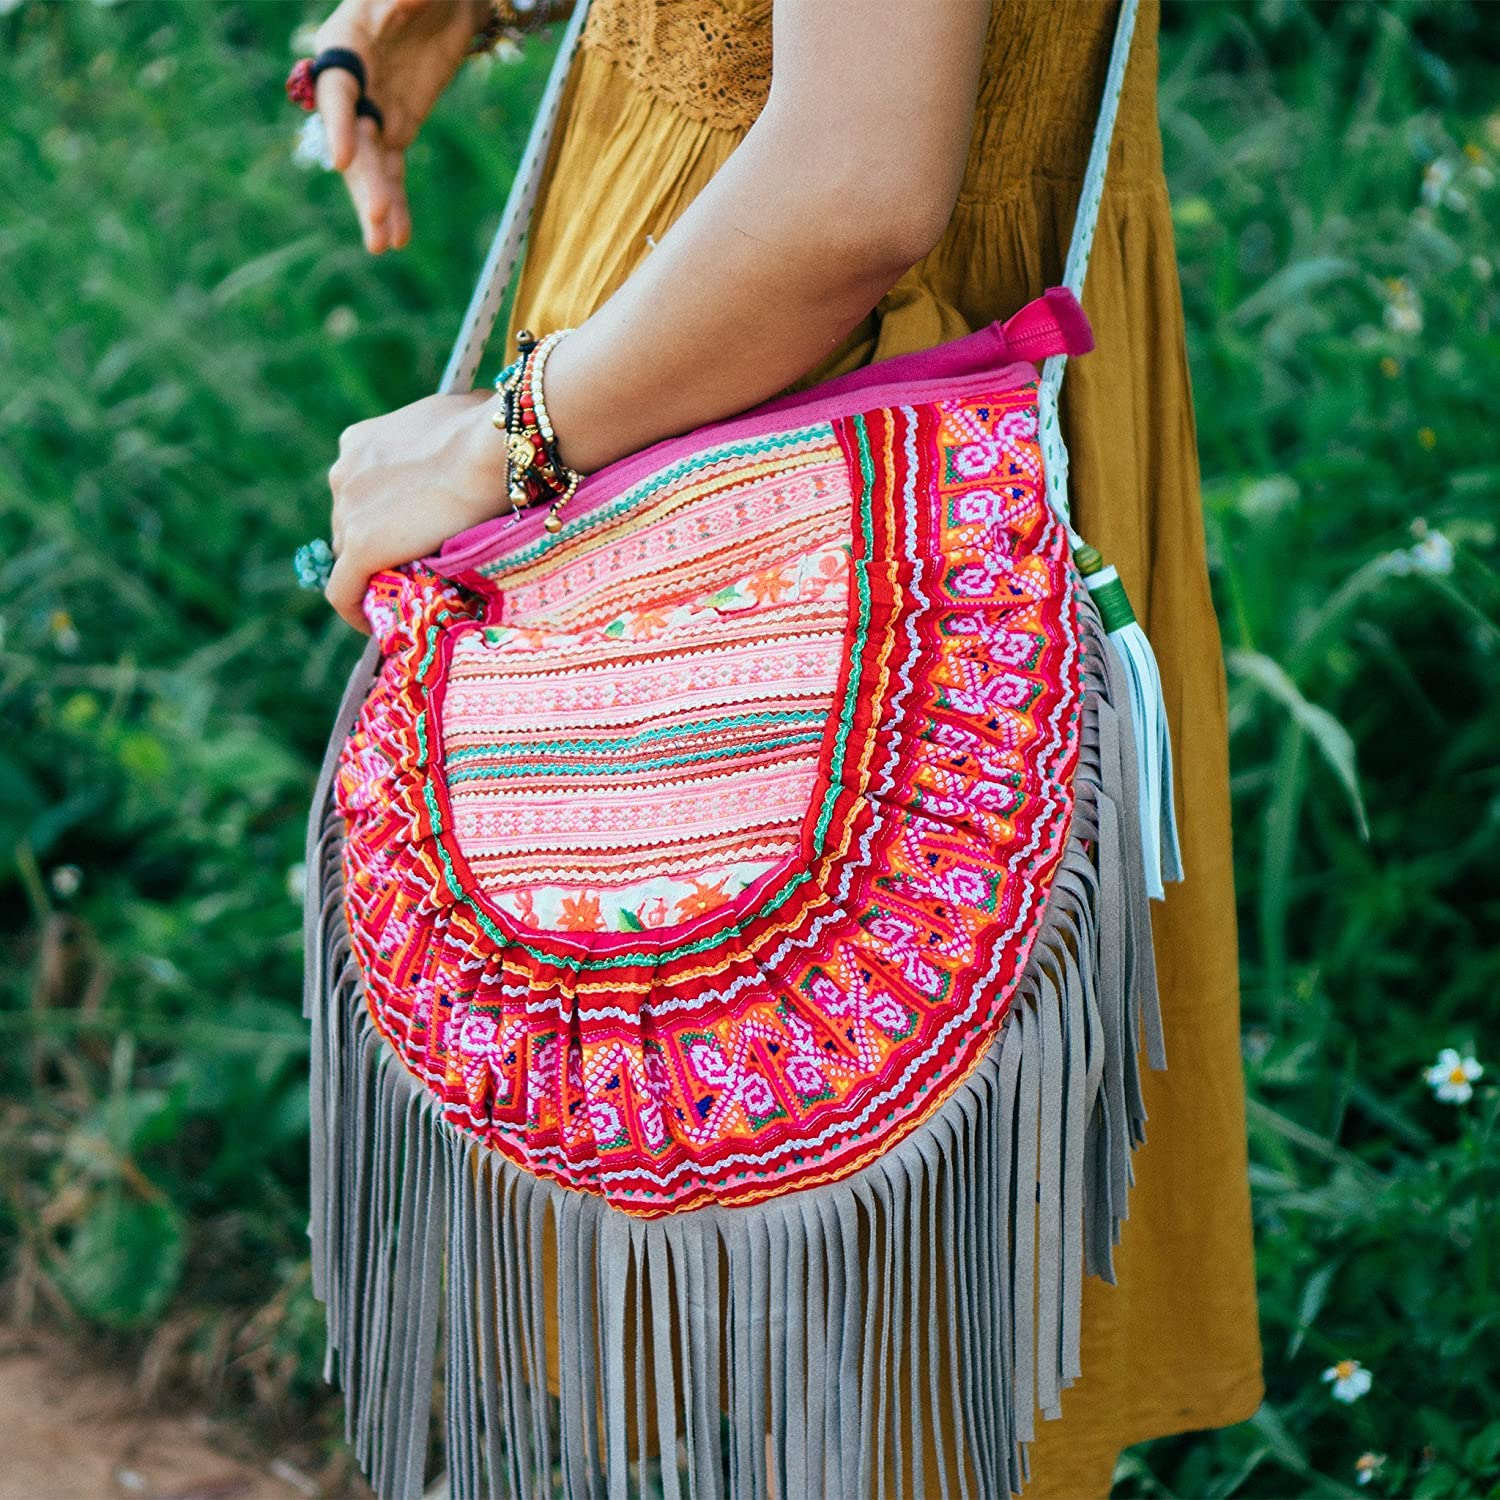 462b5d48bf Amazon.com  Changnoi Bohemian Leather Fringed Purse with Vintage Hmong Hill  Tribe Embroidered for Womens in Pink from Thailand